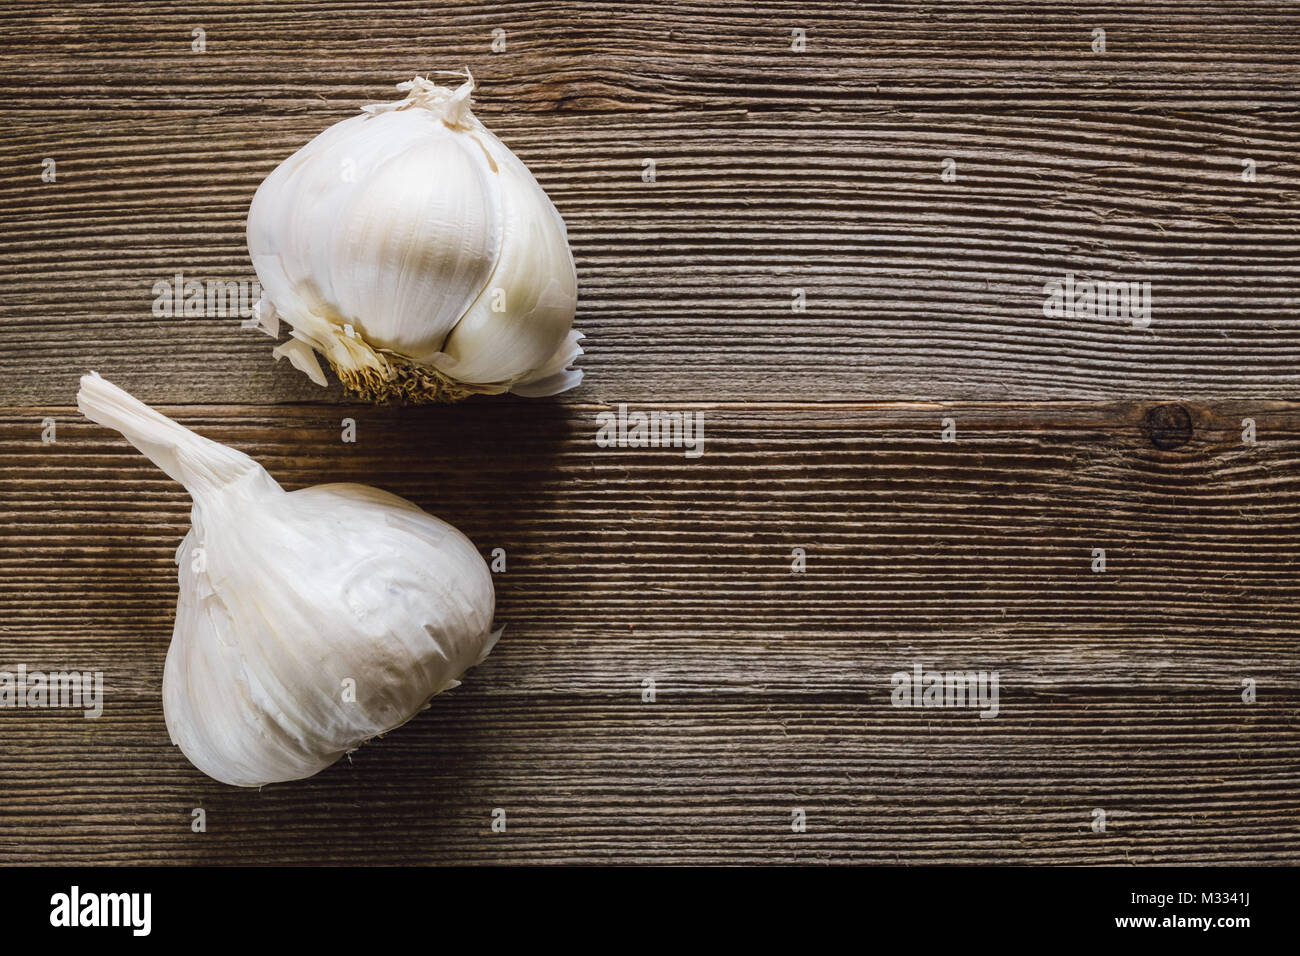 Heads of Garlic on Rustic Wooden Table with Room for Copy - Stock Image